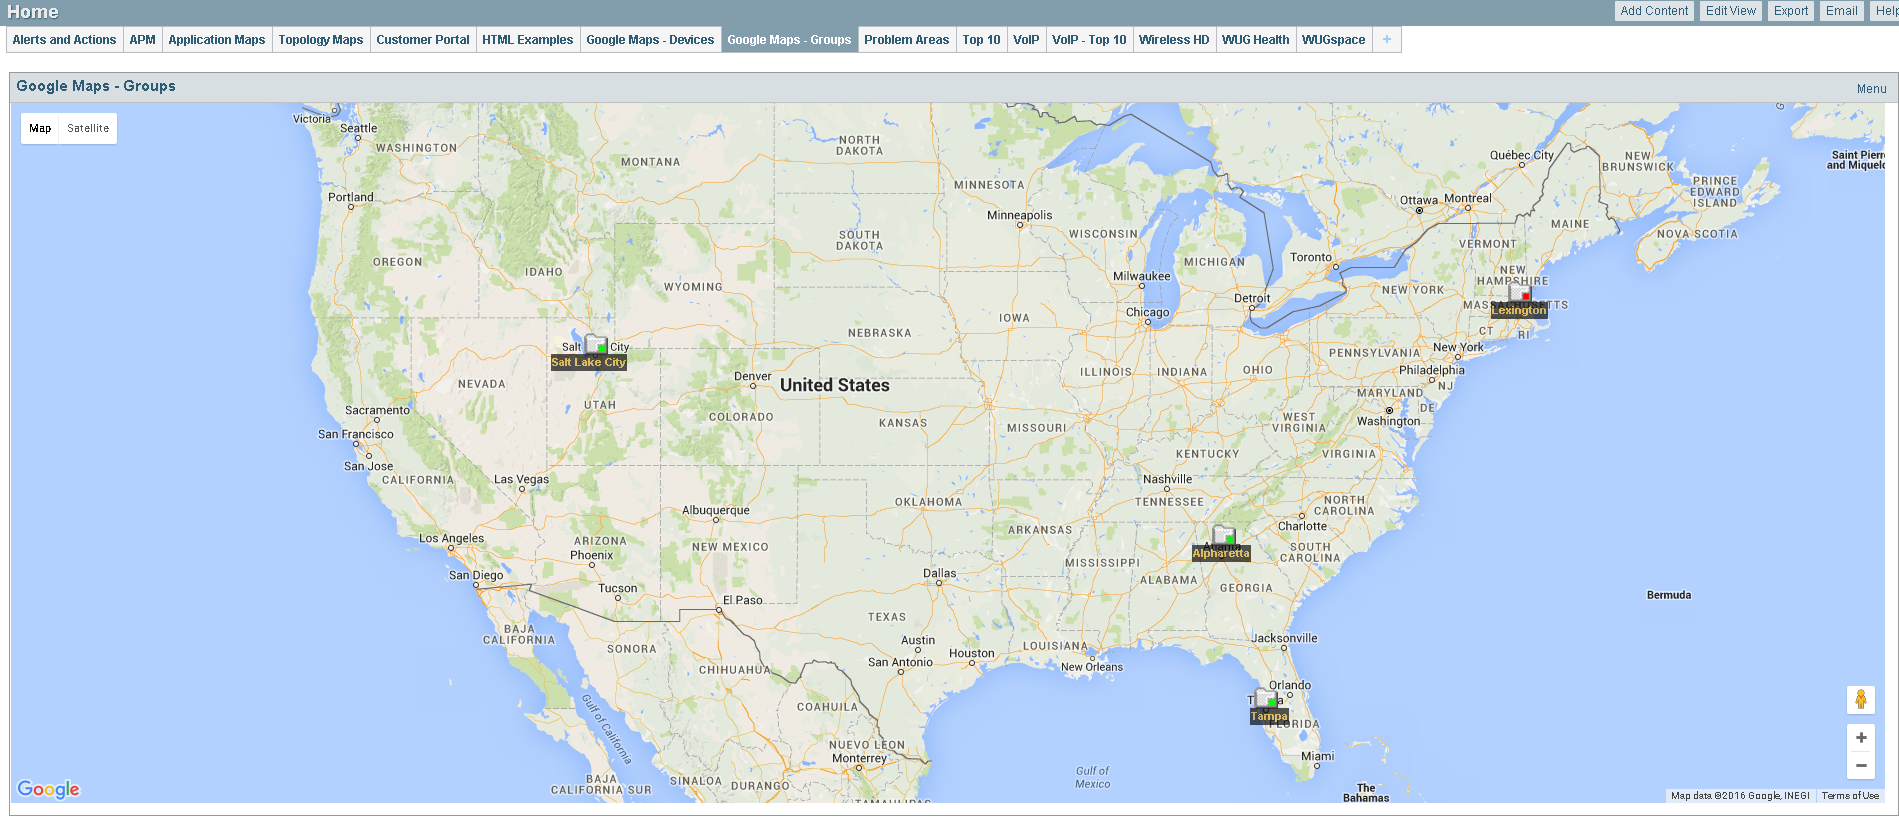 Google Maps Of United States Diagrams Free Printable Images - Google map of the united states